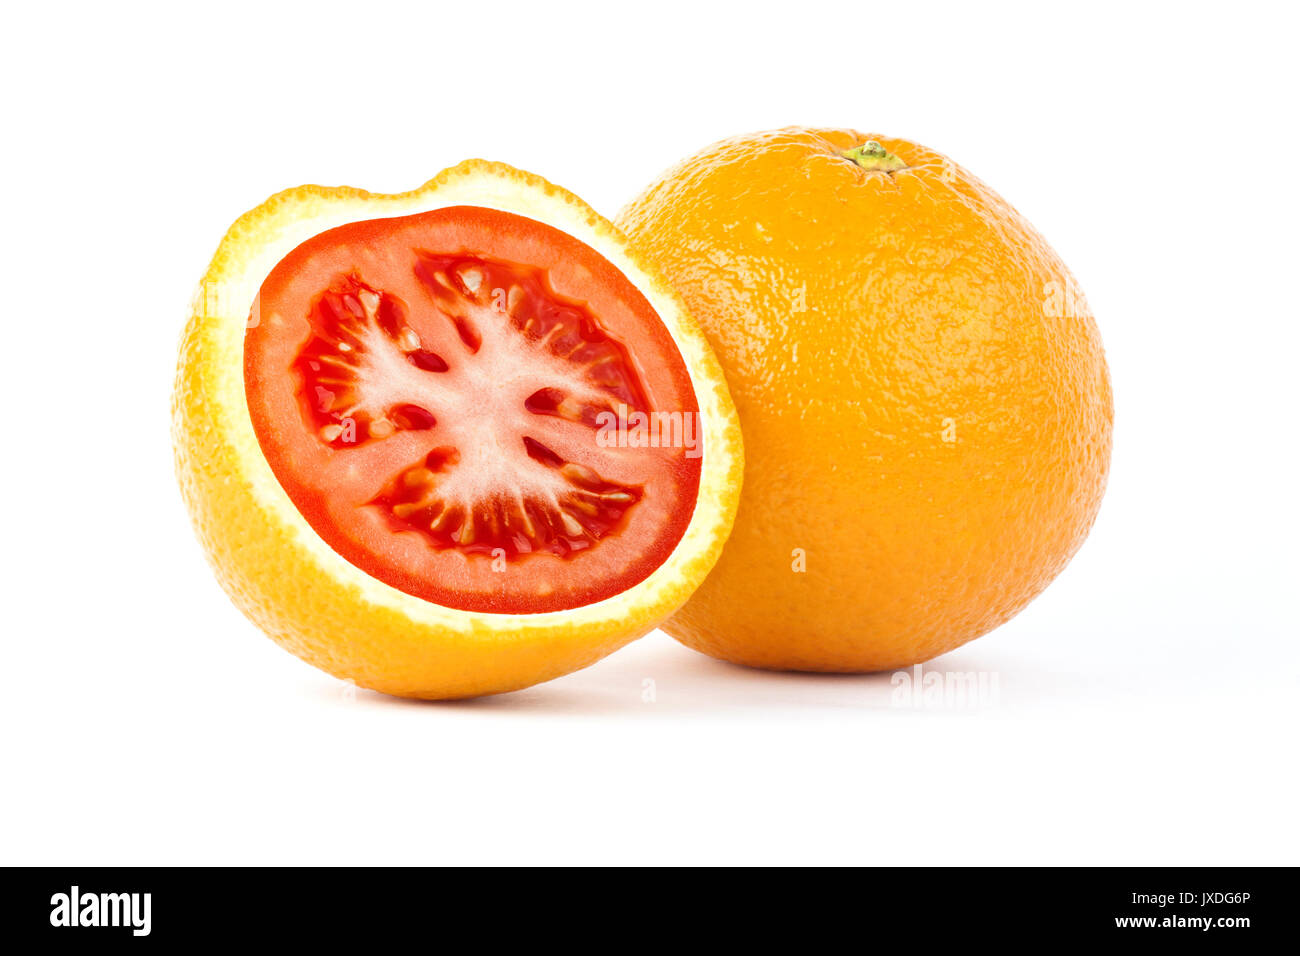 Creative photo manipulation of sliced orange with red tomato inside isolated on white background - Stock Image